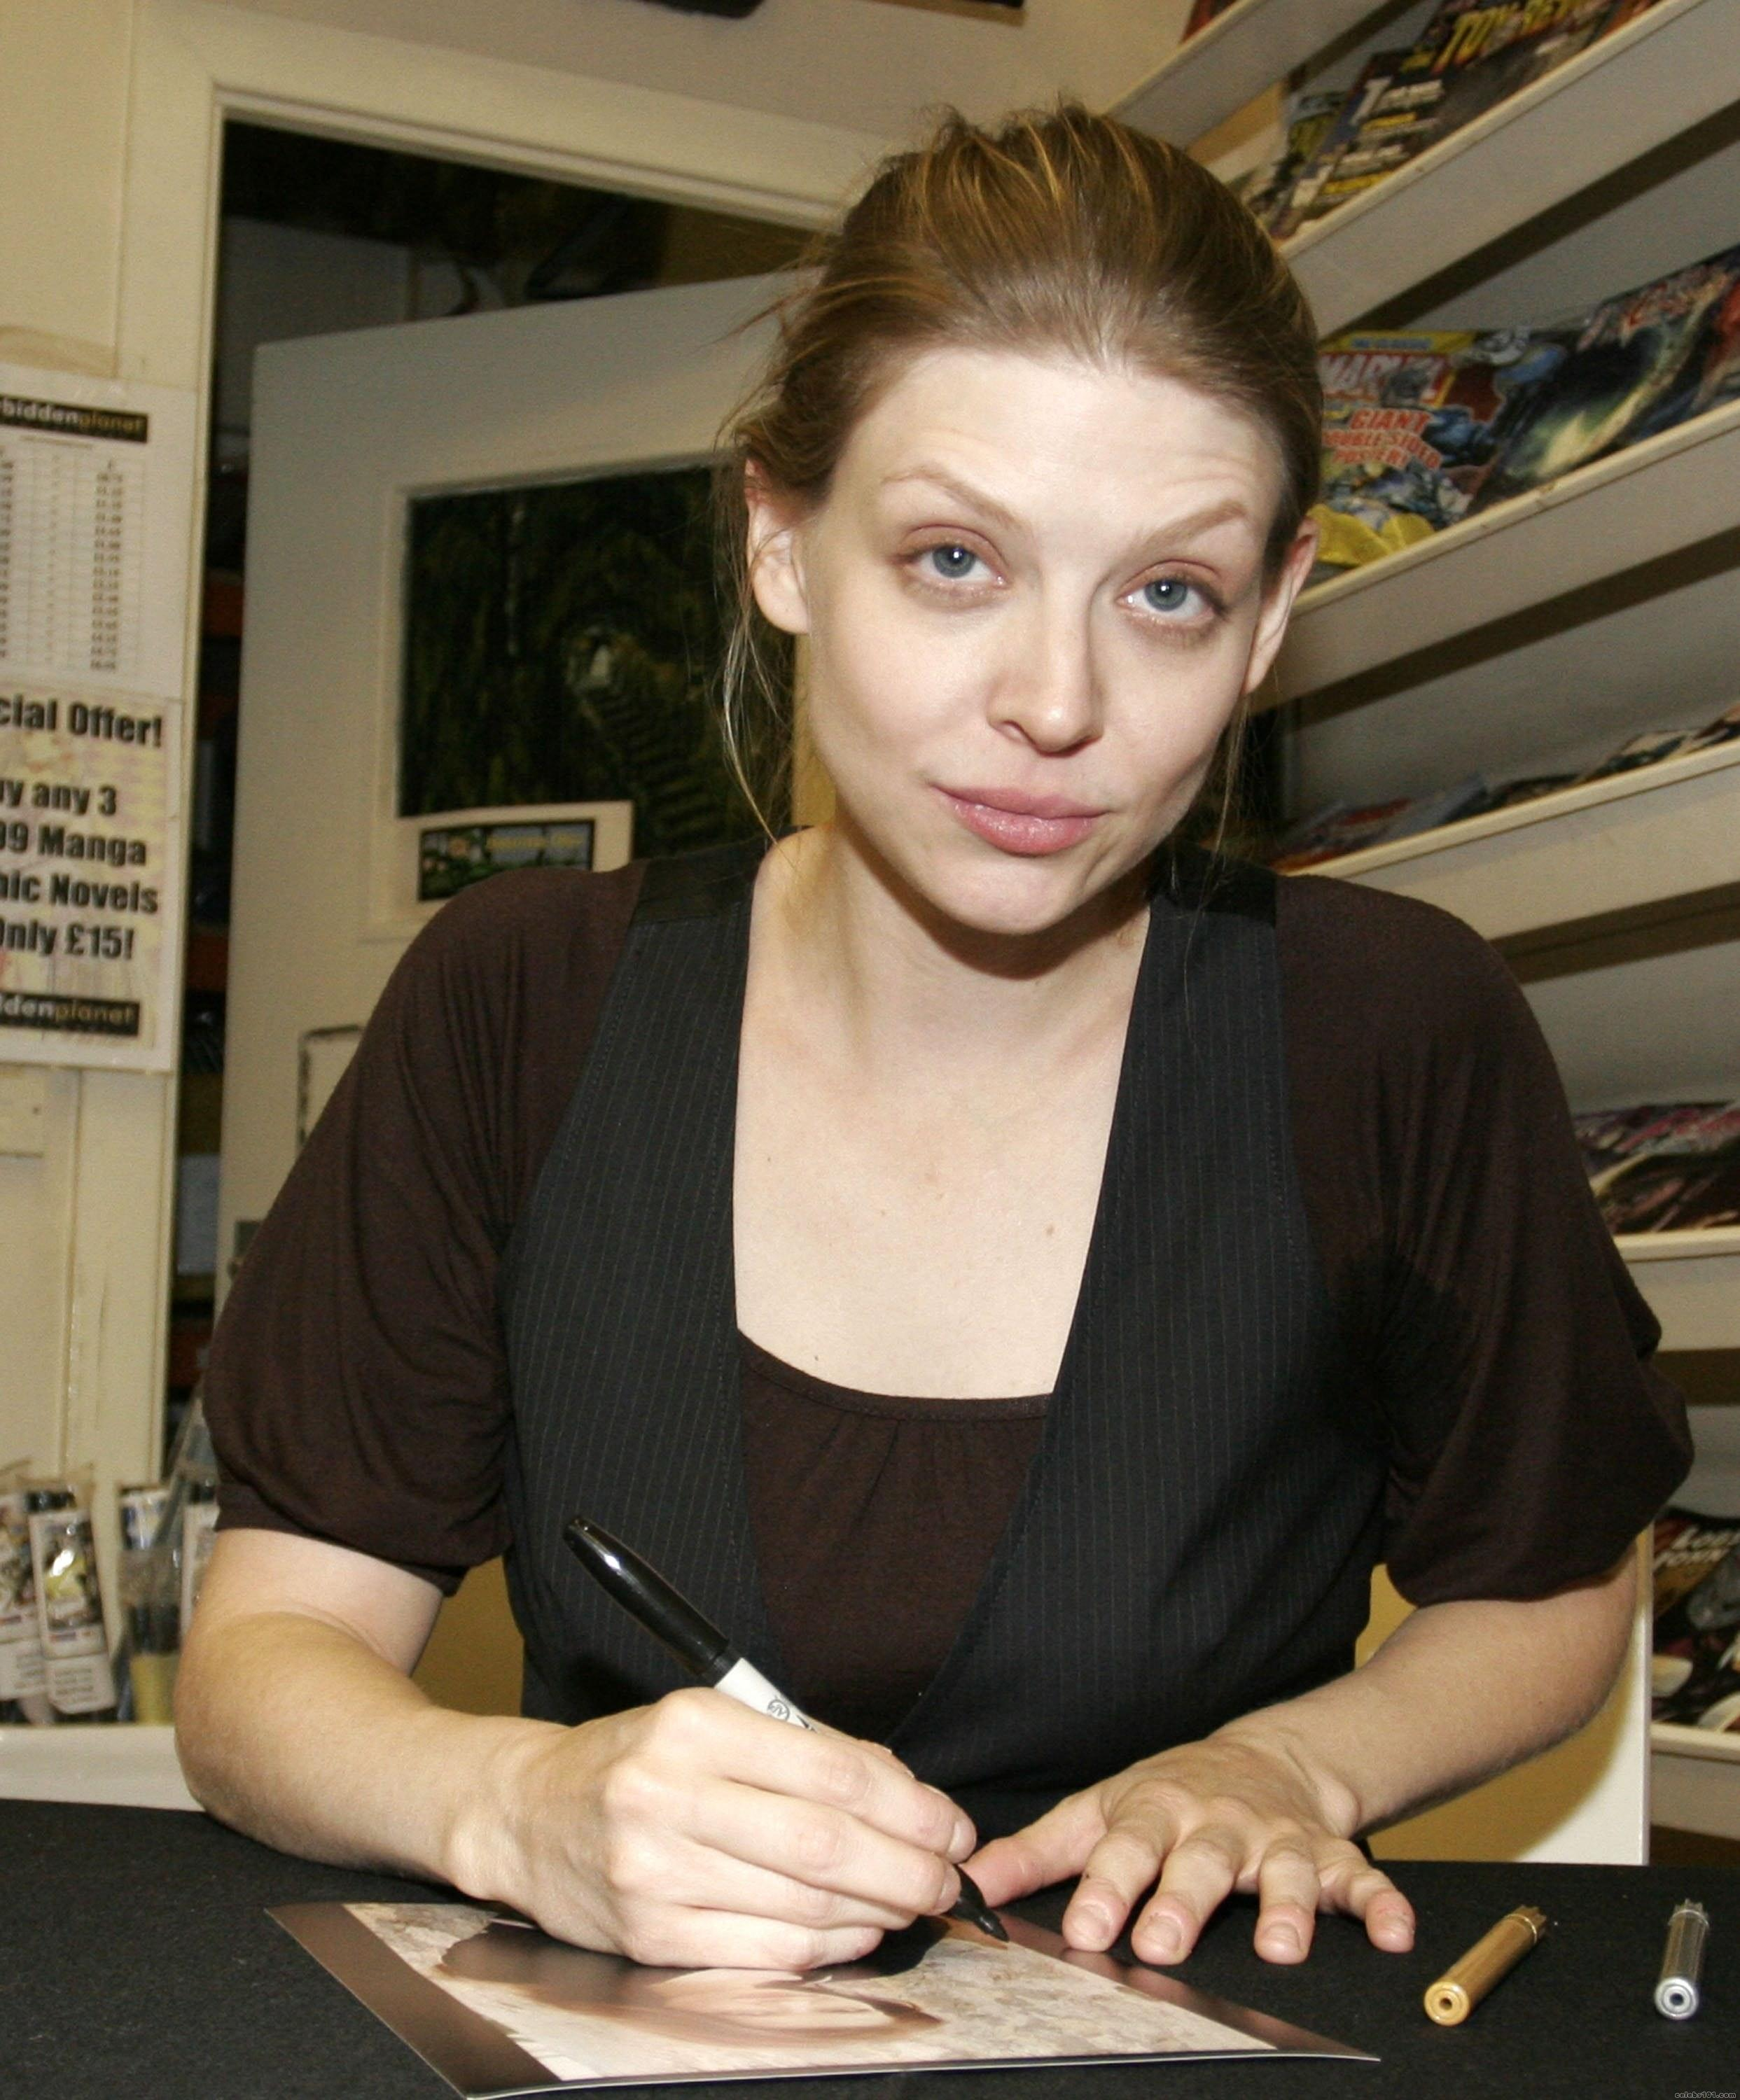 The 40-year old daughter of father Edward Benson and mother Diane Benson, 163 cm tall Amber Benson in 2017 photo